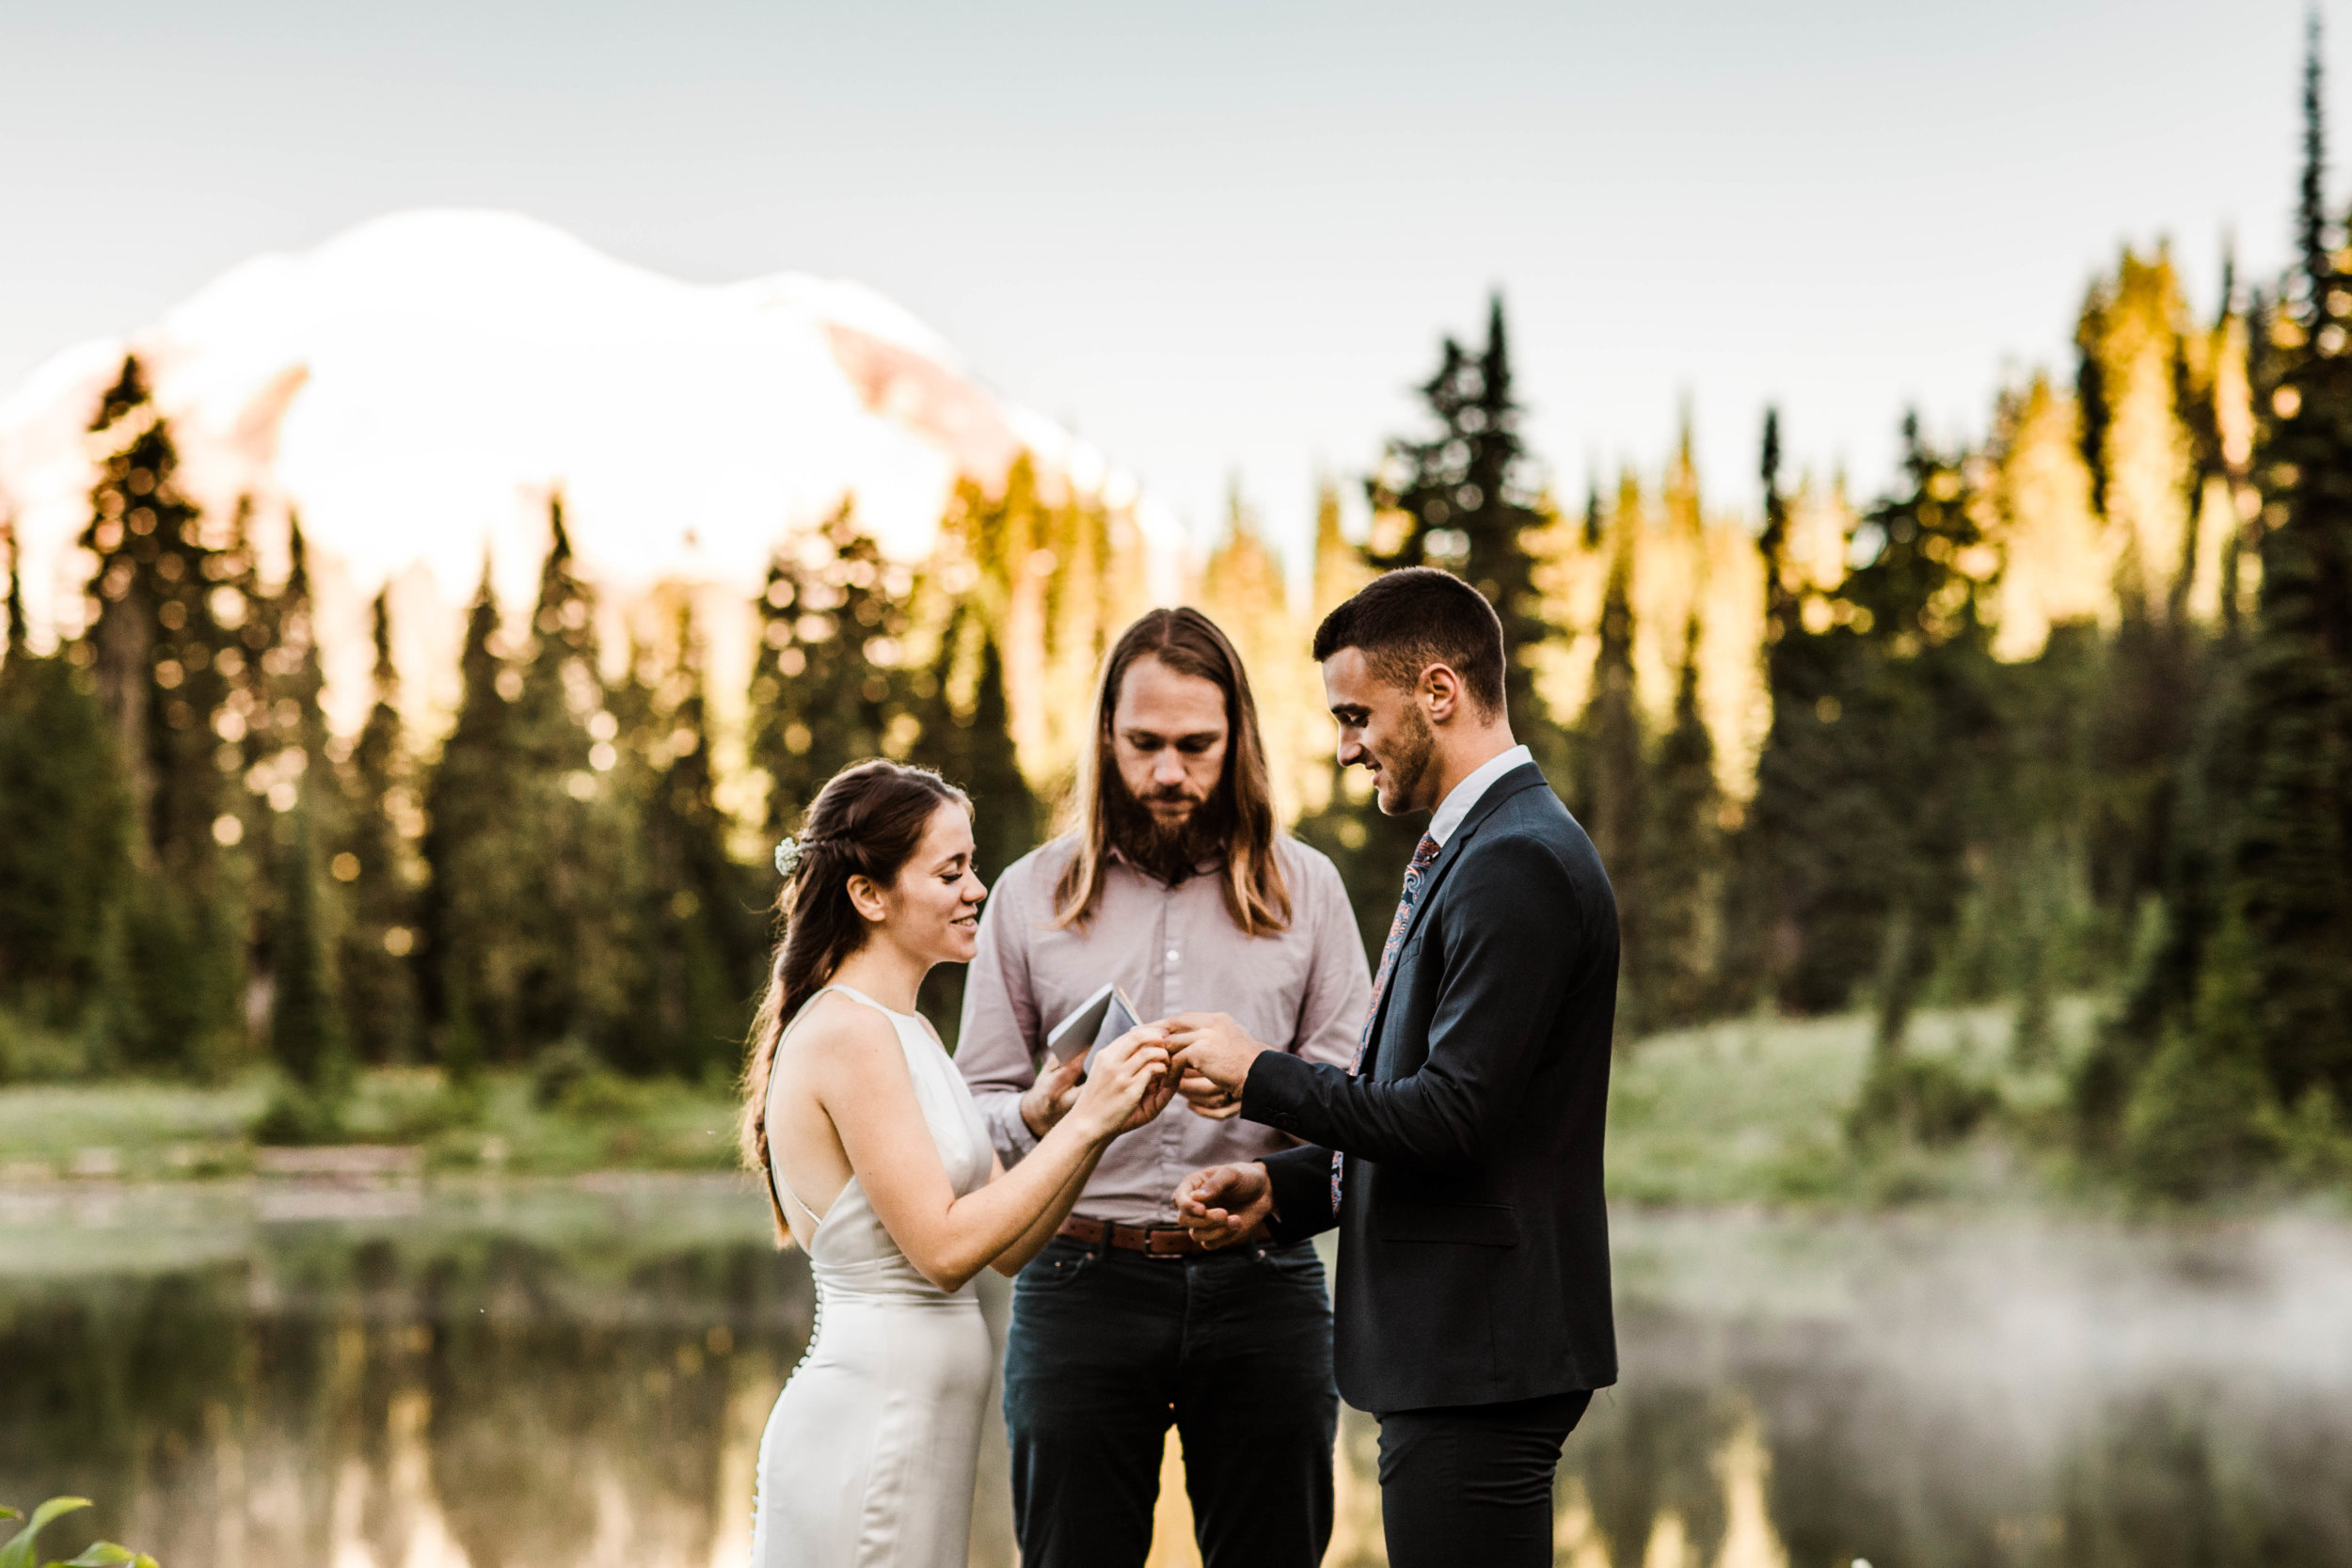 Mount_Rainier_National_Park_elopement_in_Washington_State_photographed_by_Adventure_Wedding_Photographers_in_Seattle-51.jpg